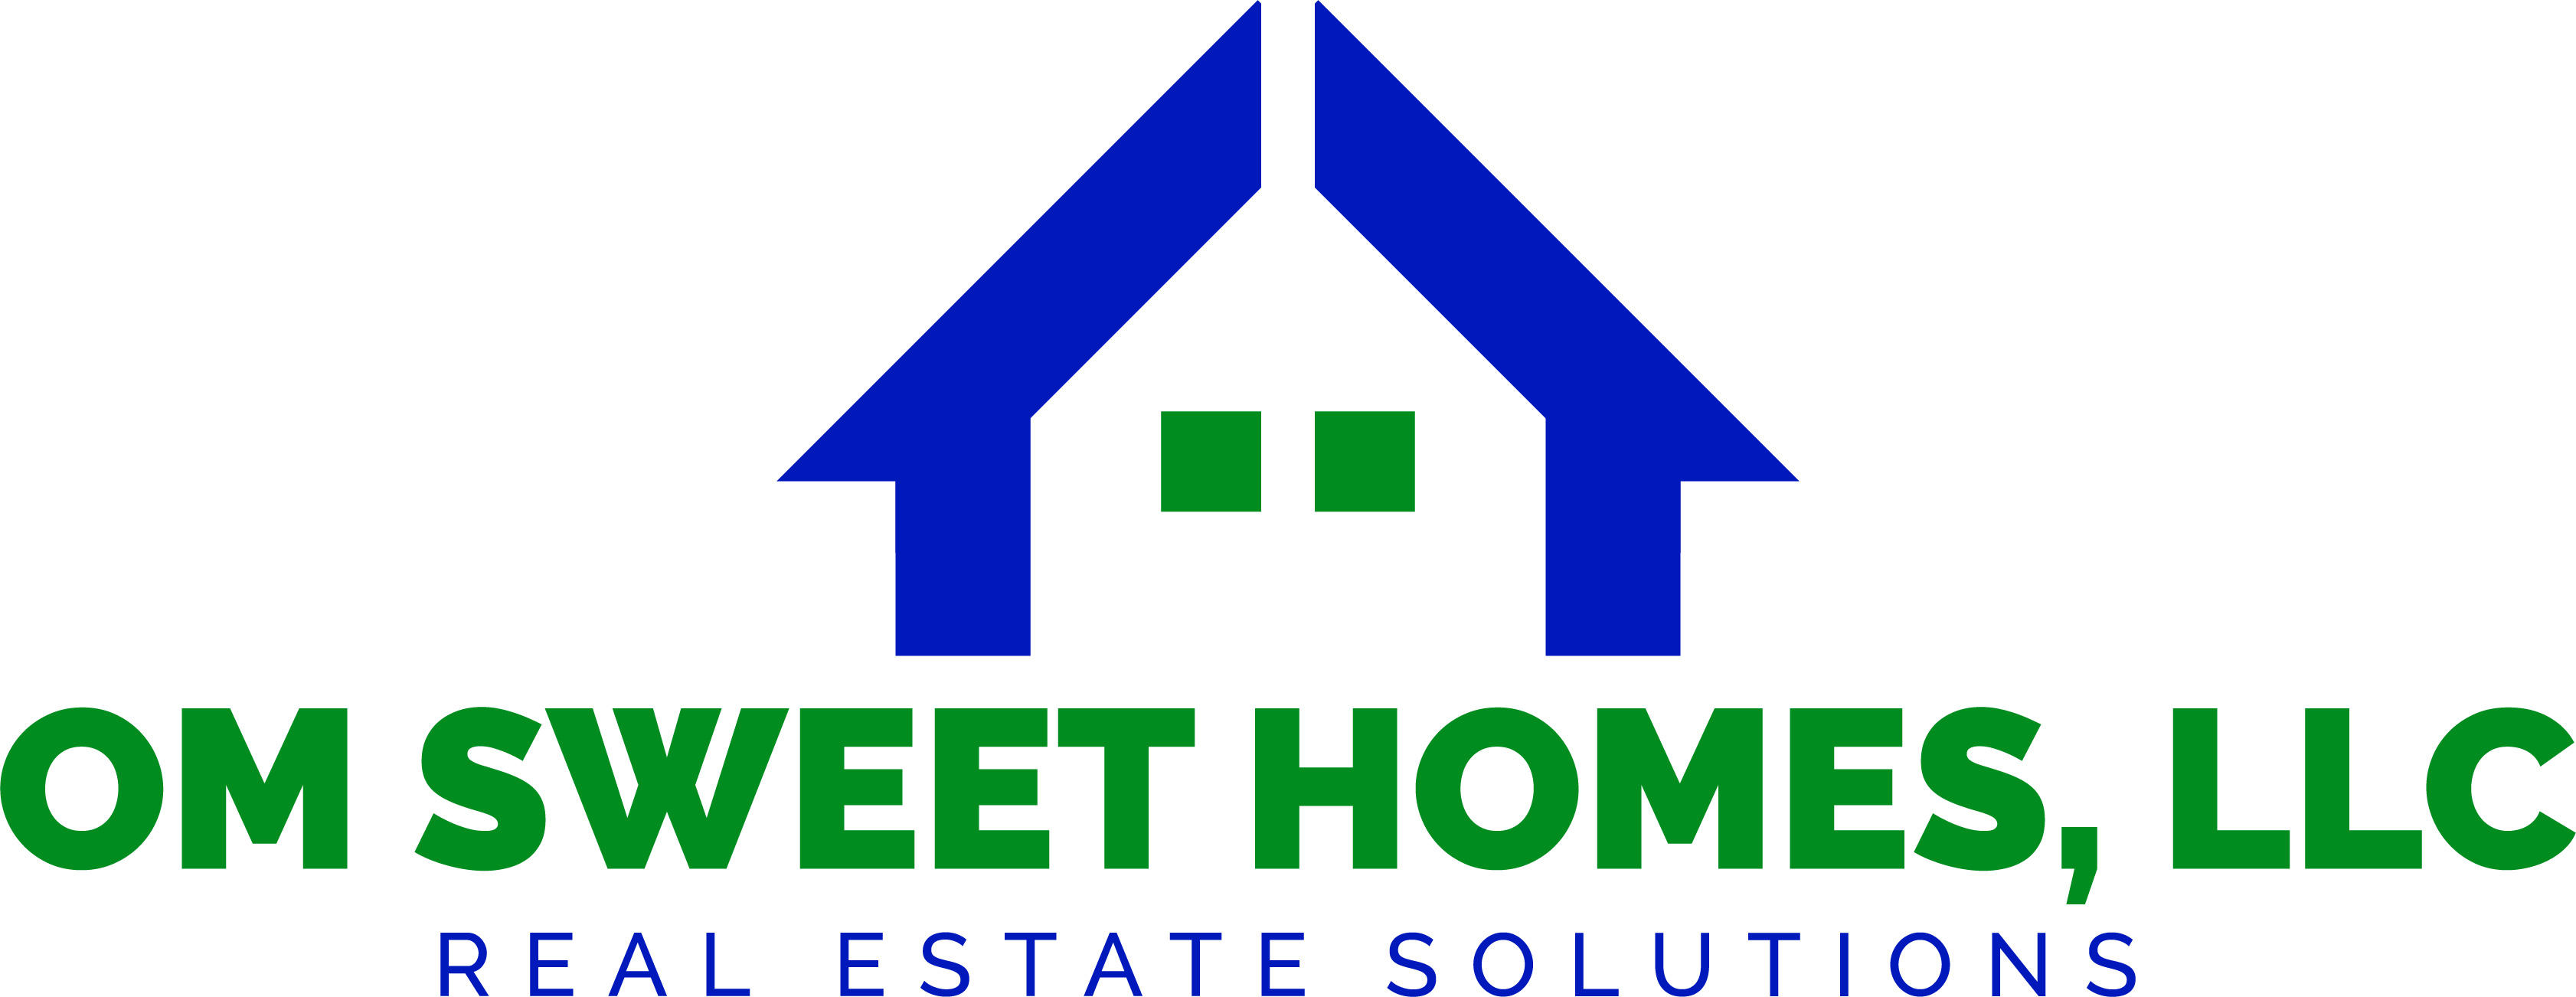 OM Sweet Homes  LLC